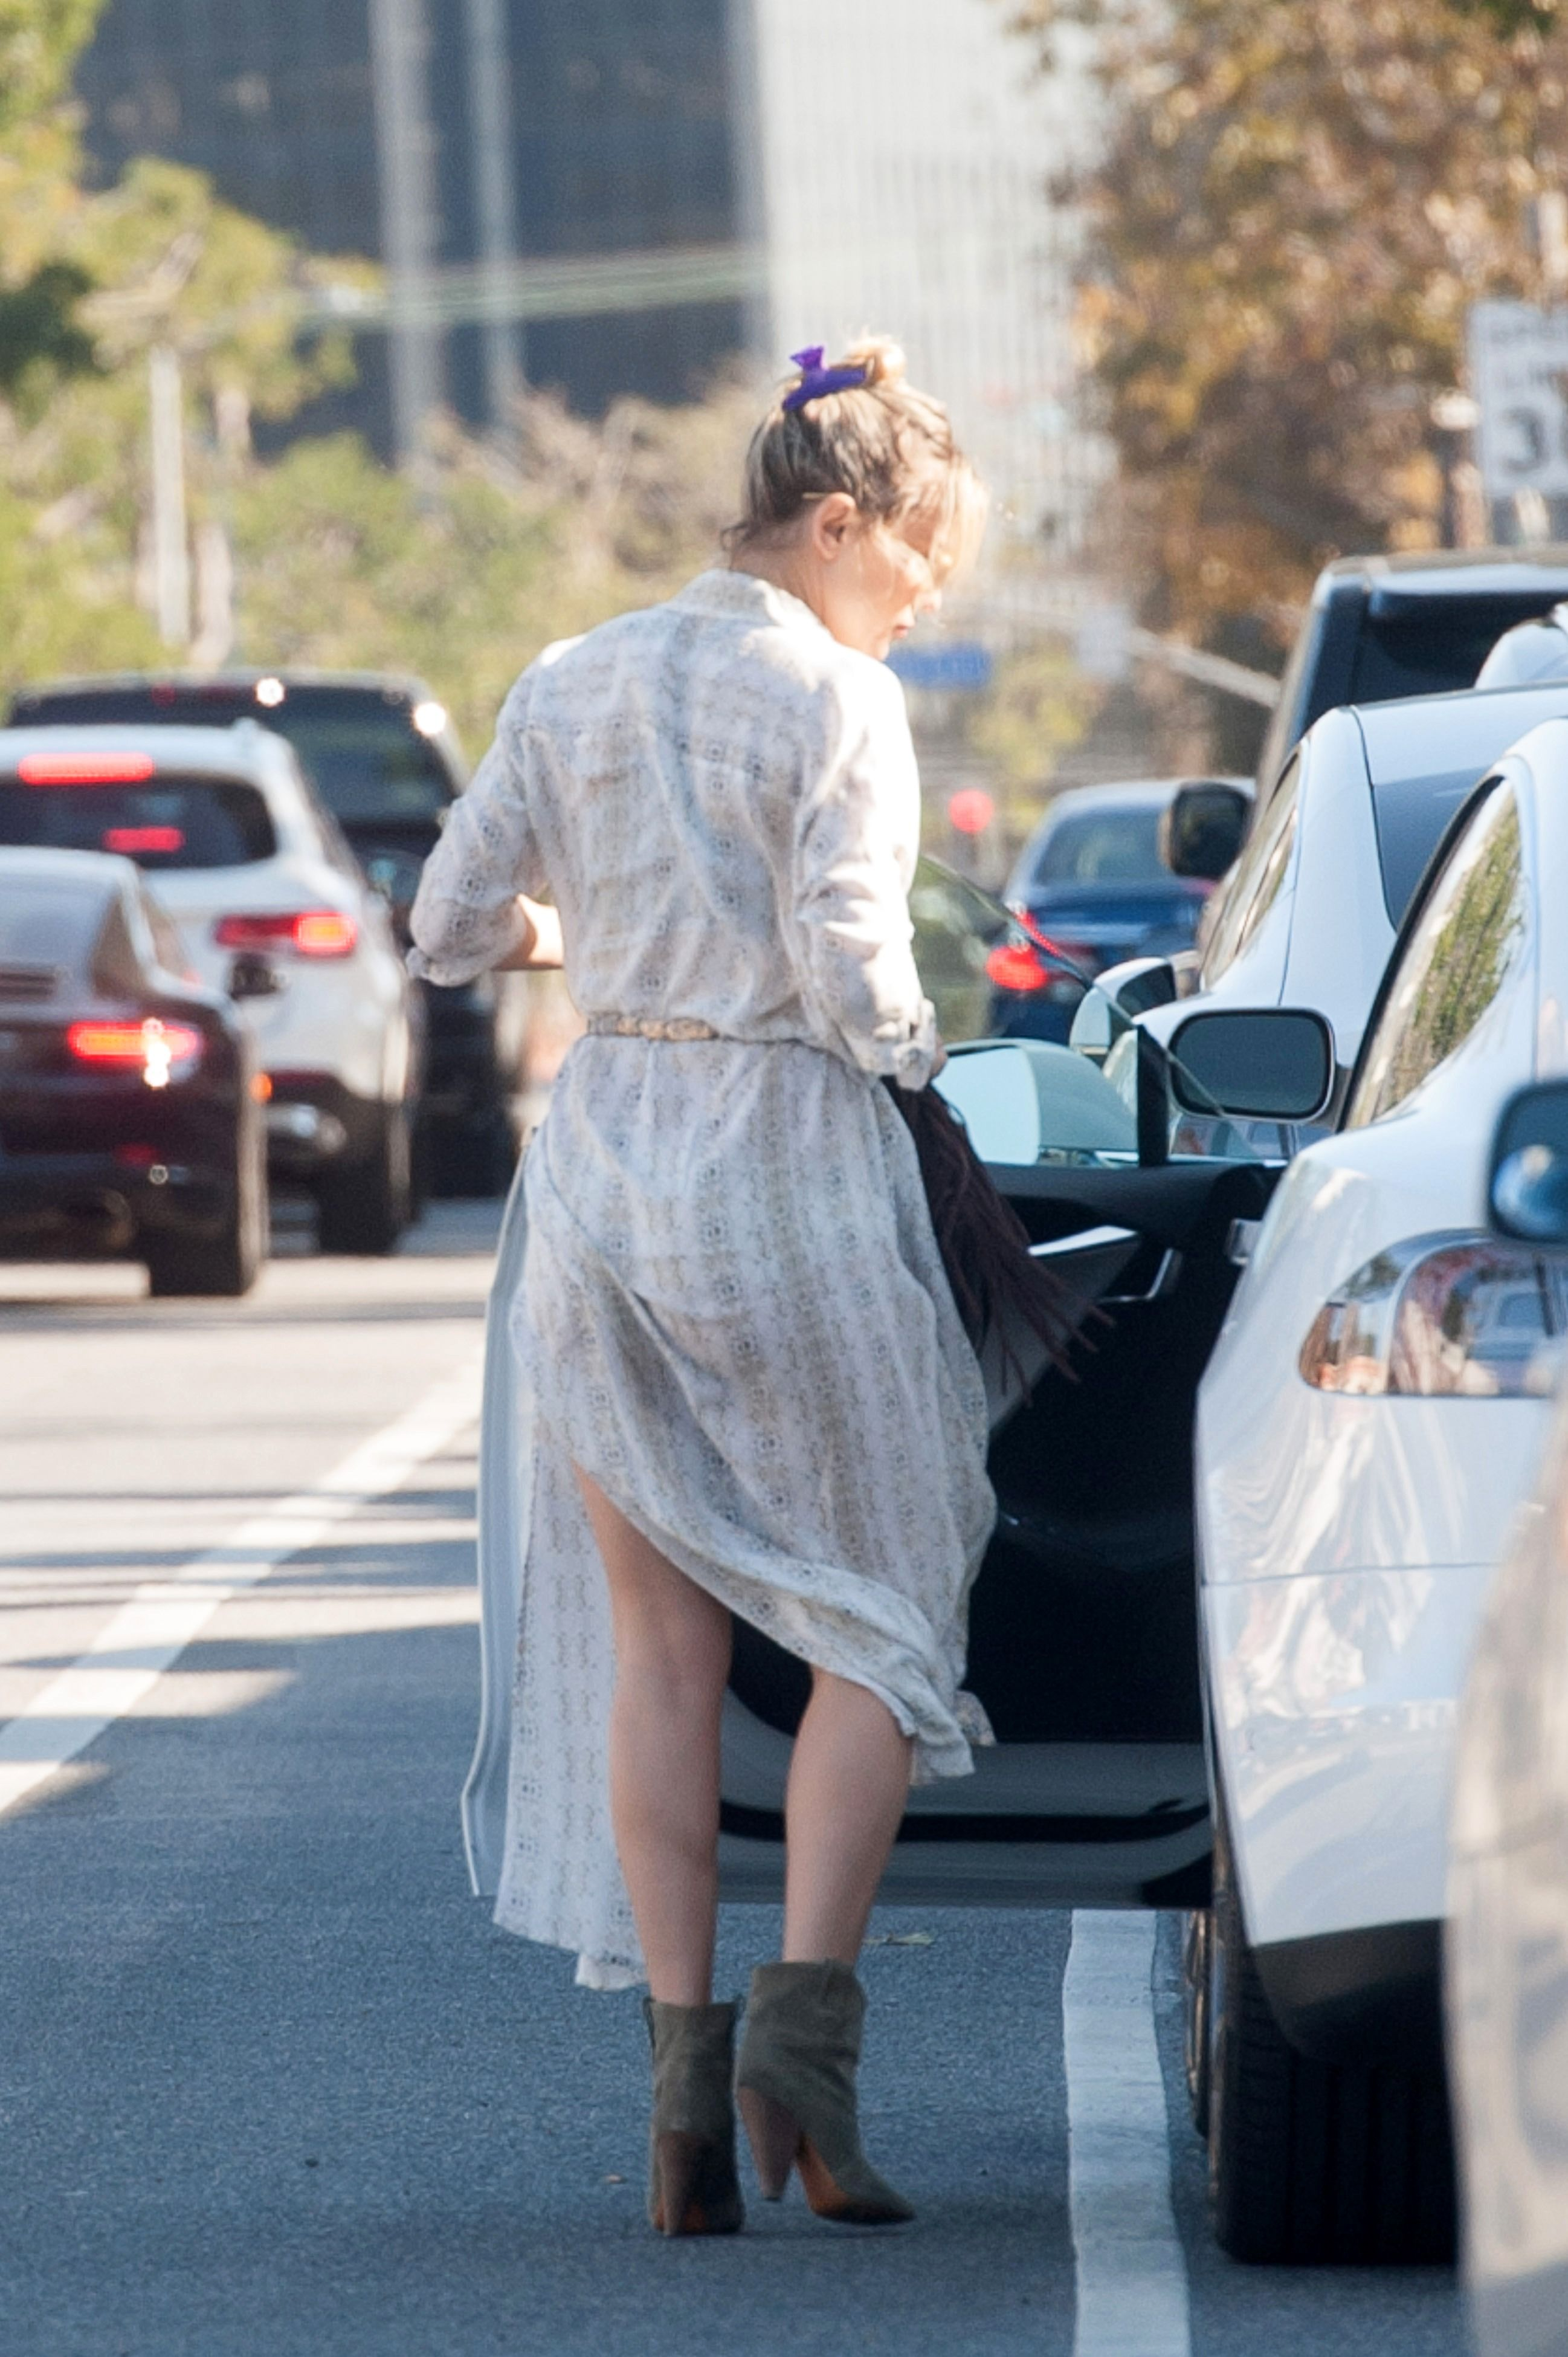 Kate Hudson Upskirt Photo...